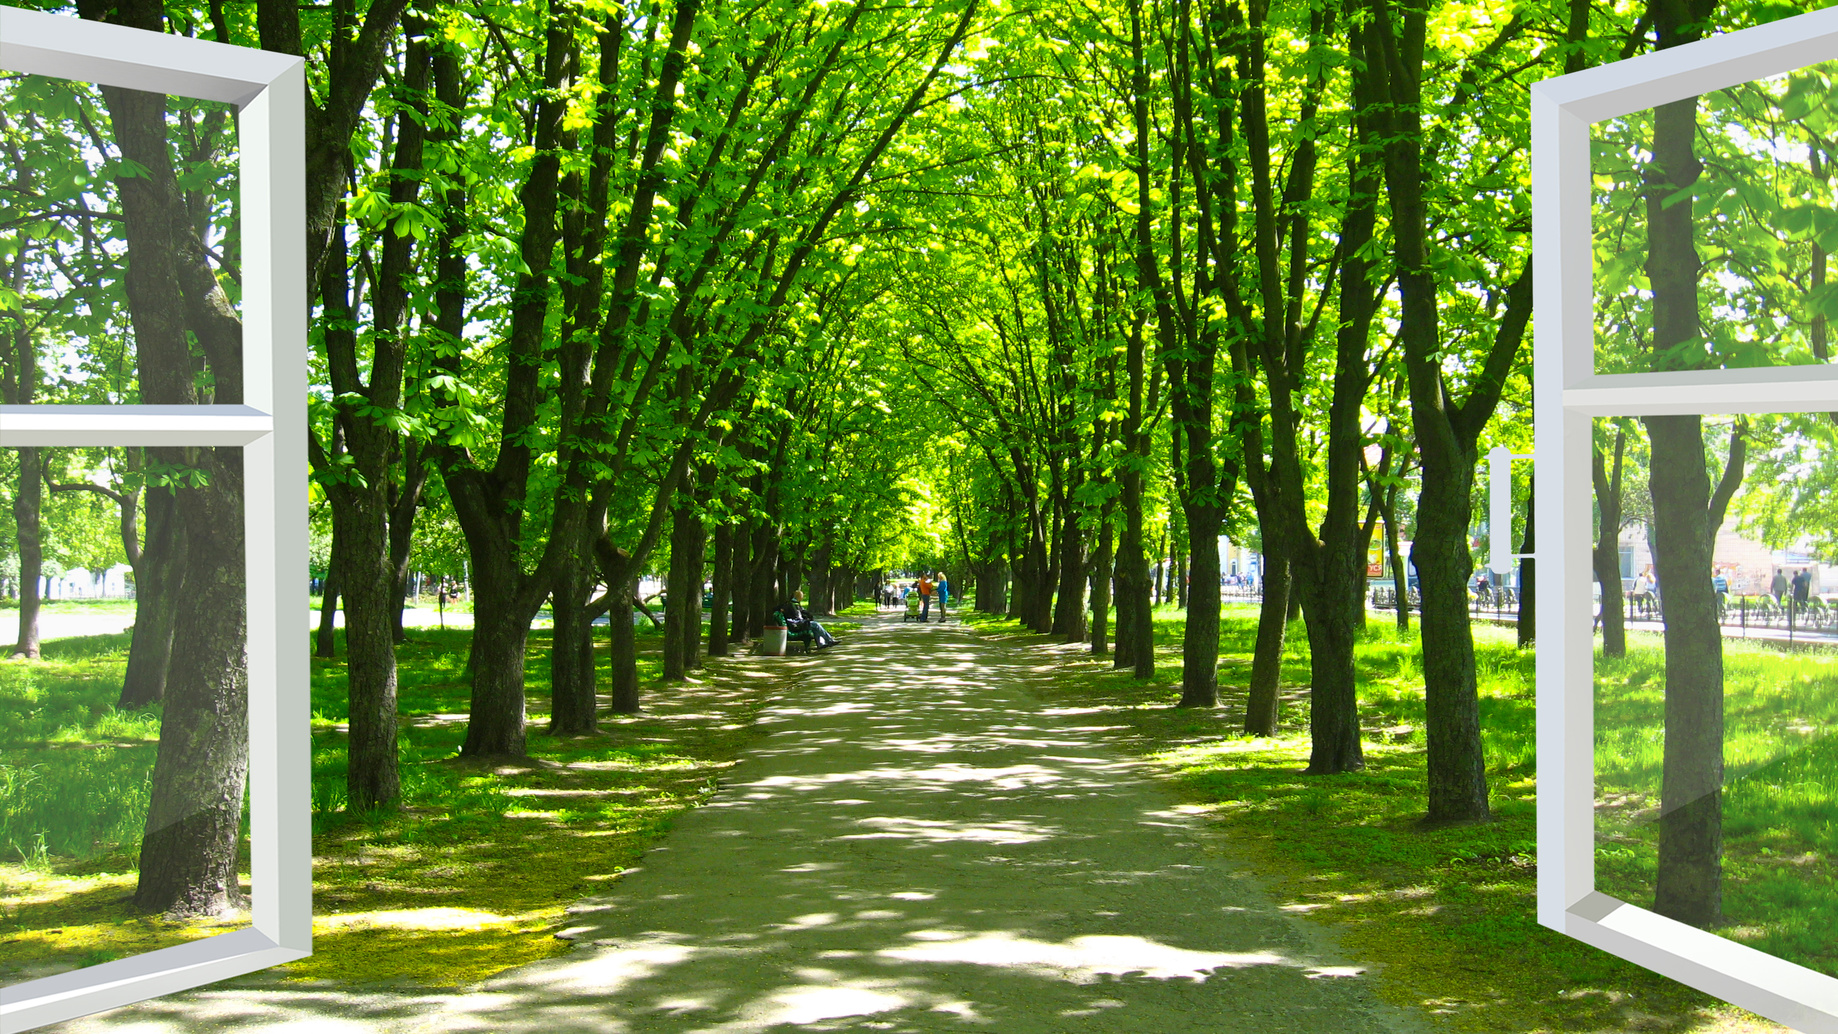 window opened to the beautiful park with many green trees